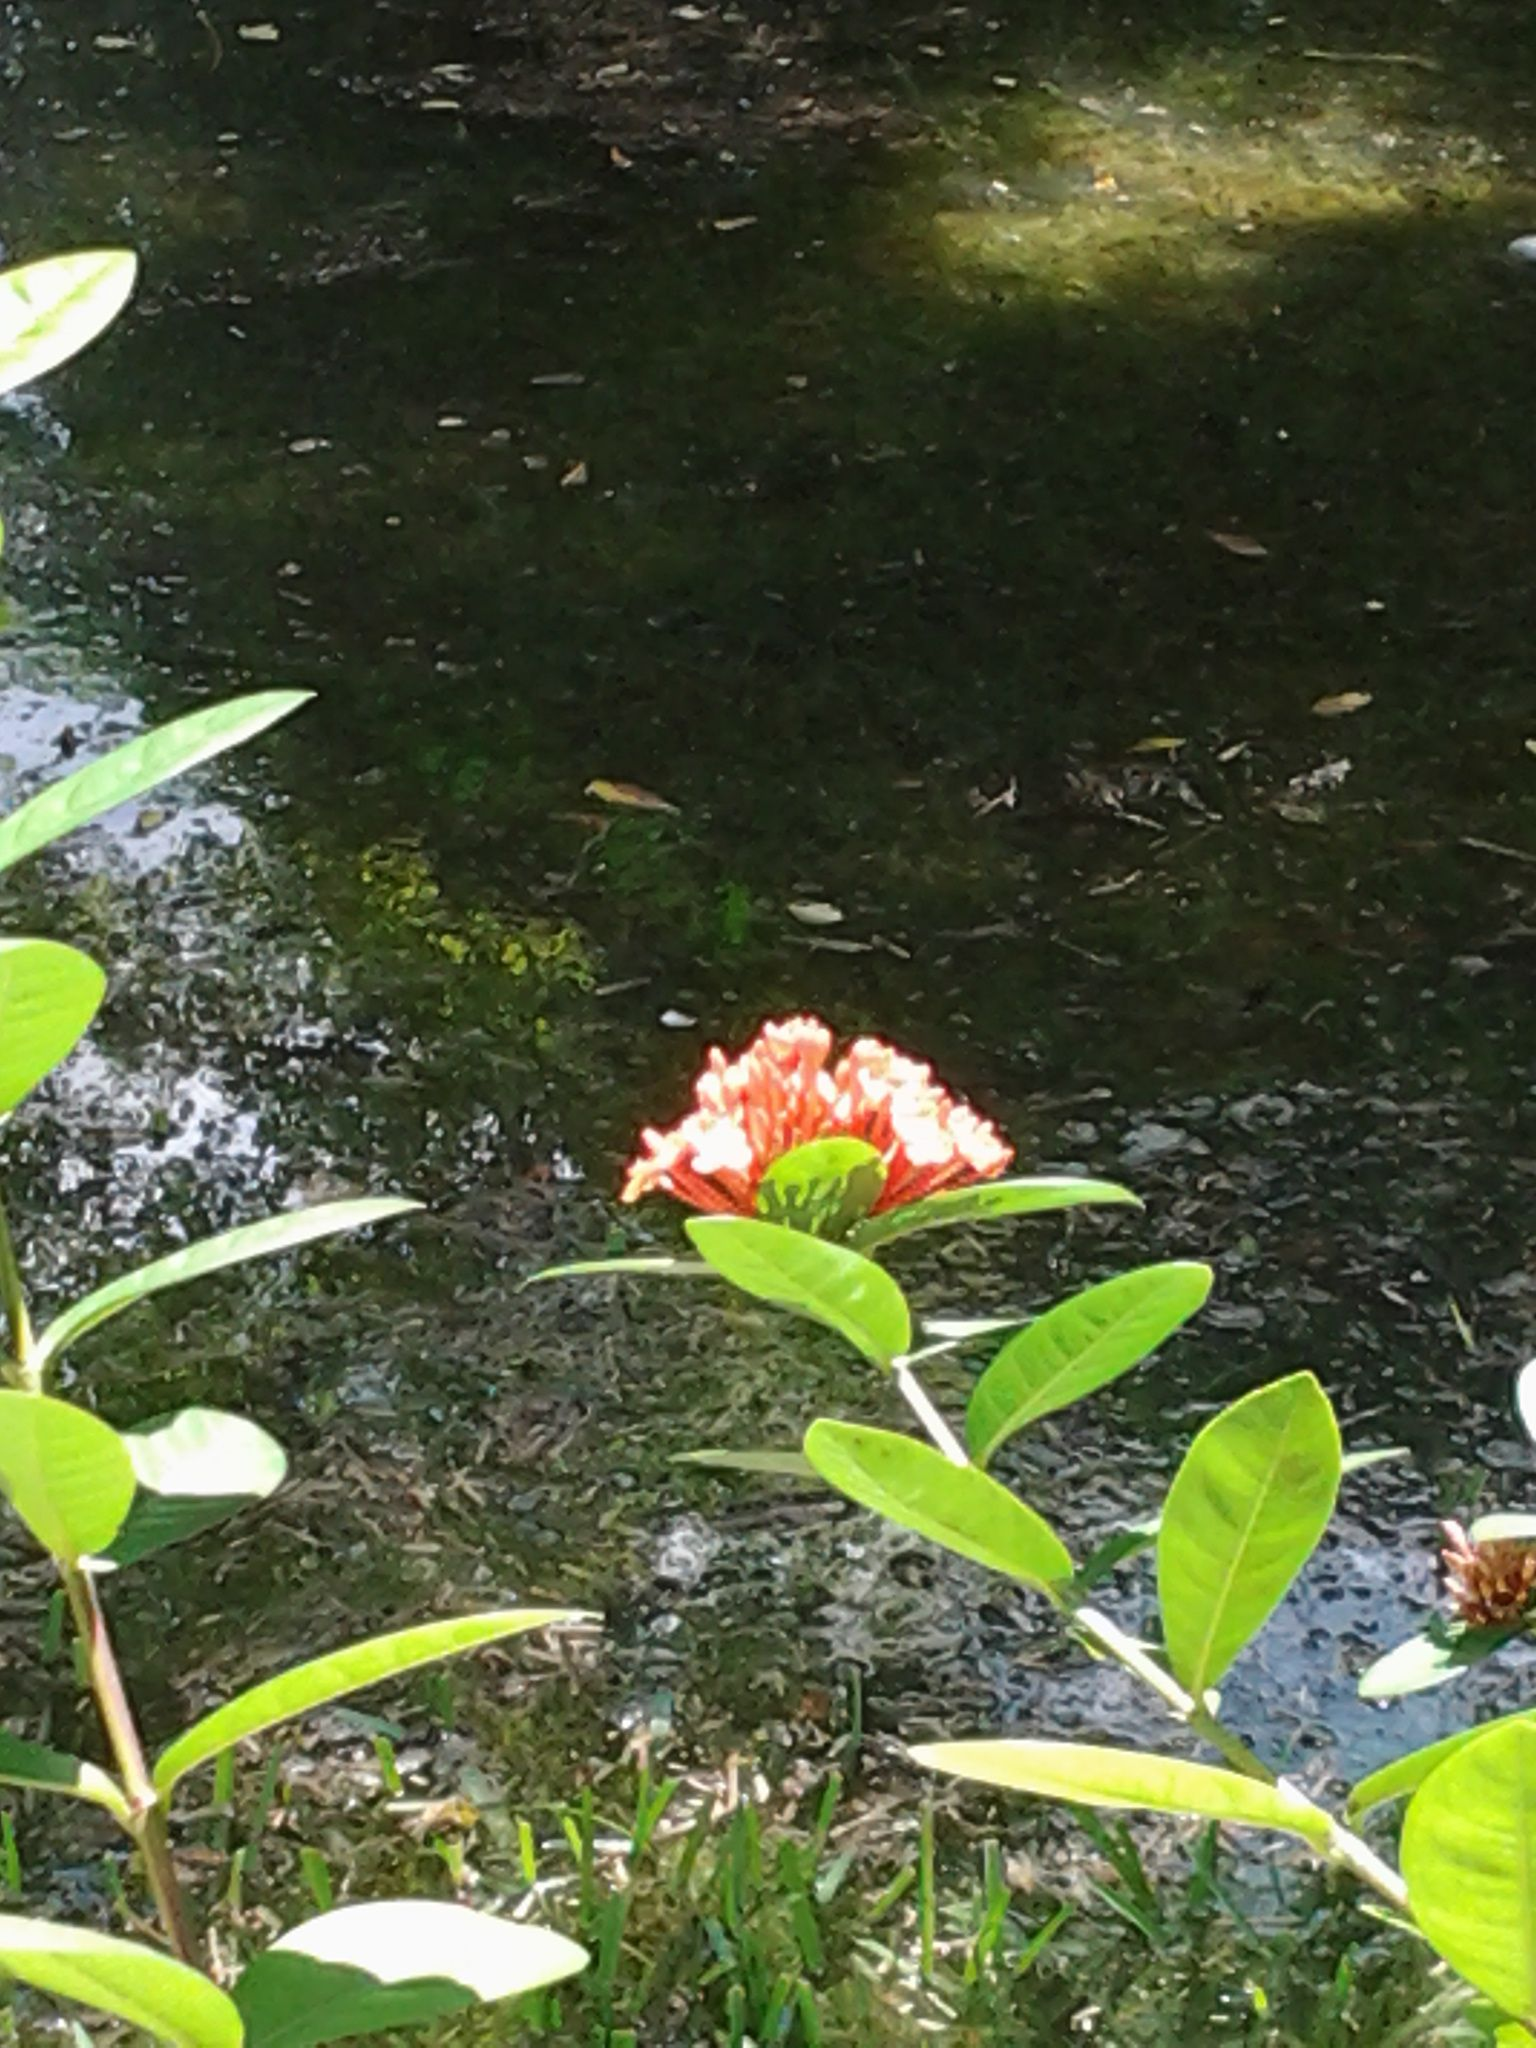 Its a really pretty  orange flower with water around it